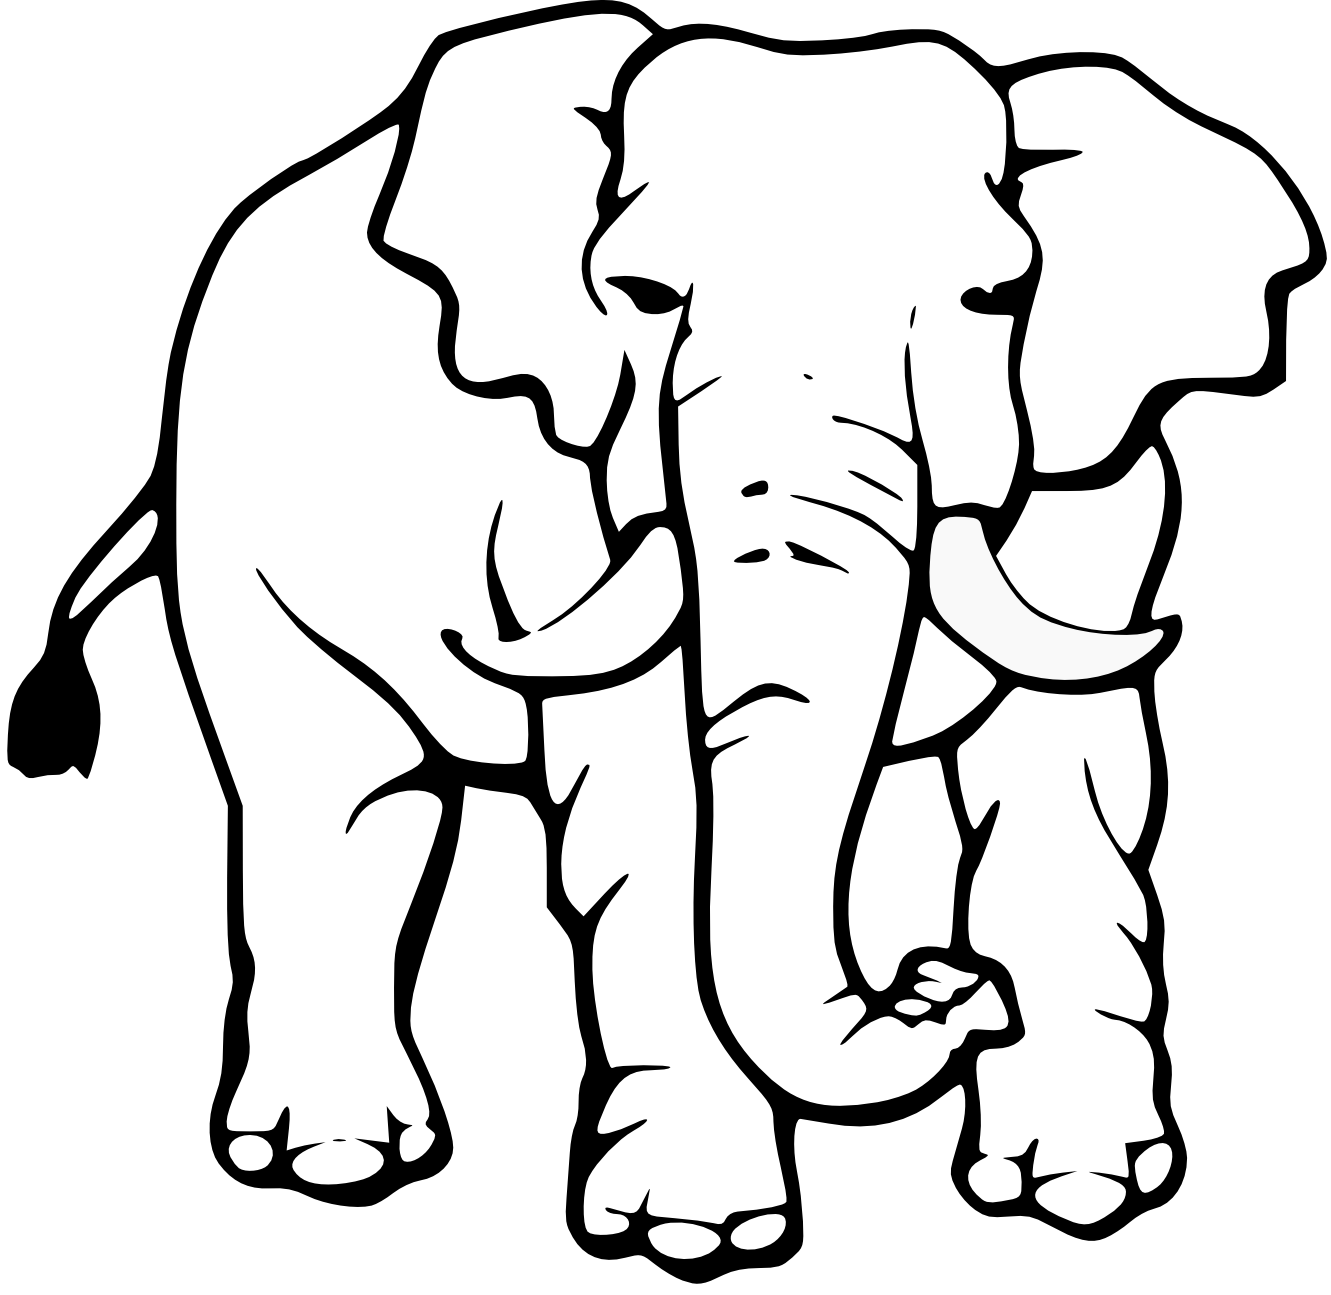 cute%20elephant%20clipart%20black%20and%20white